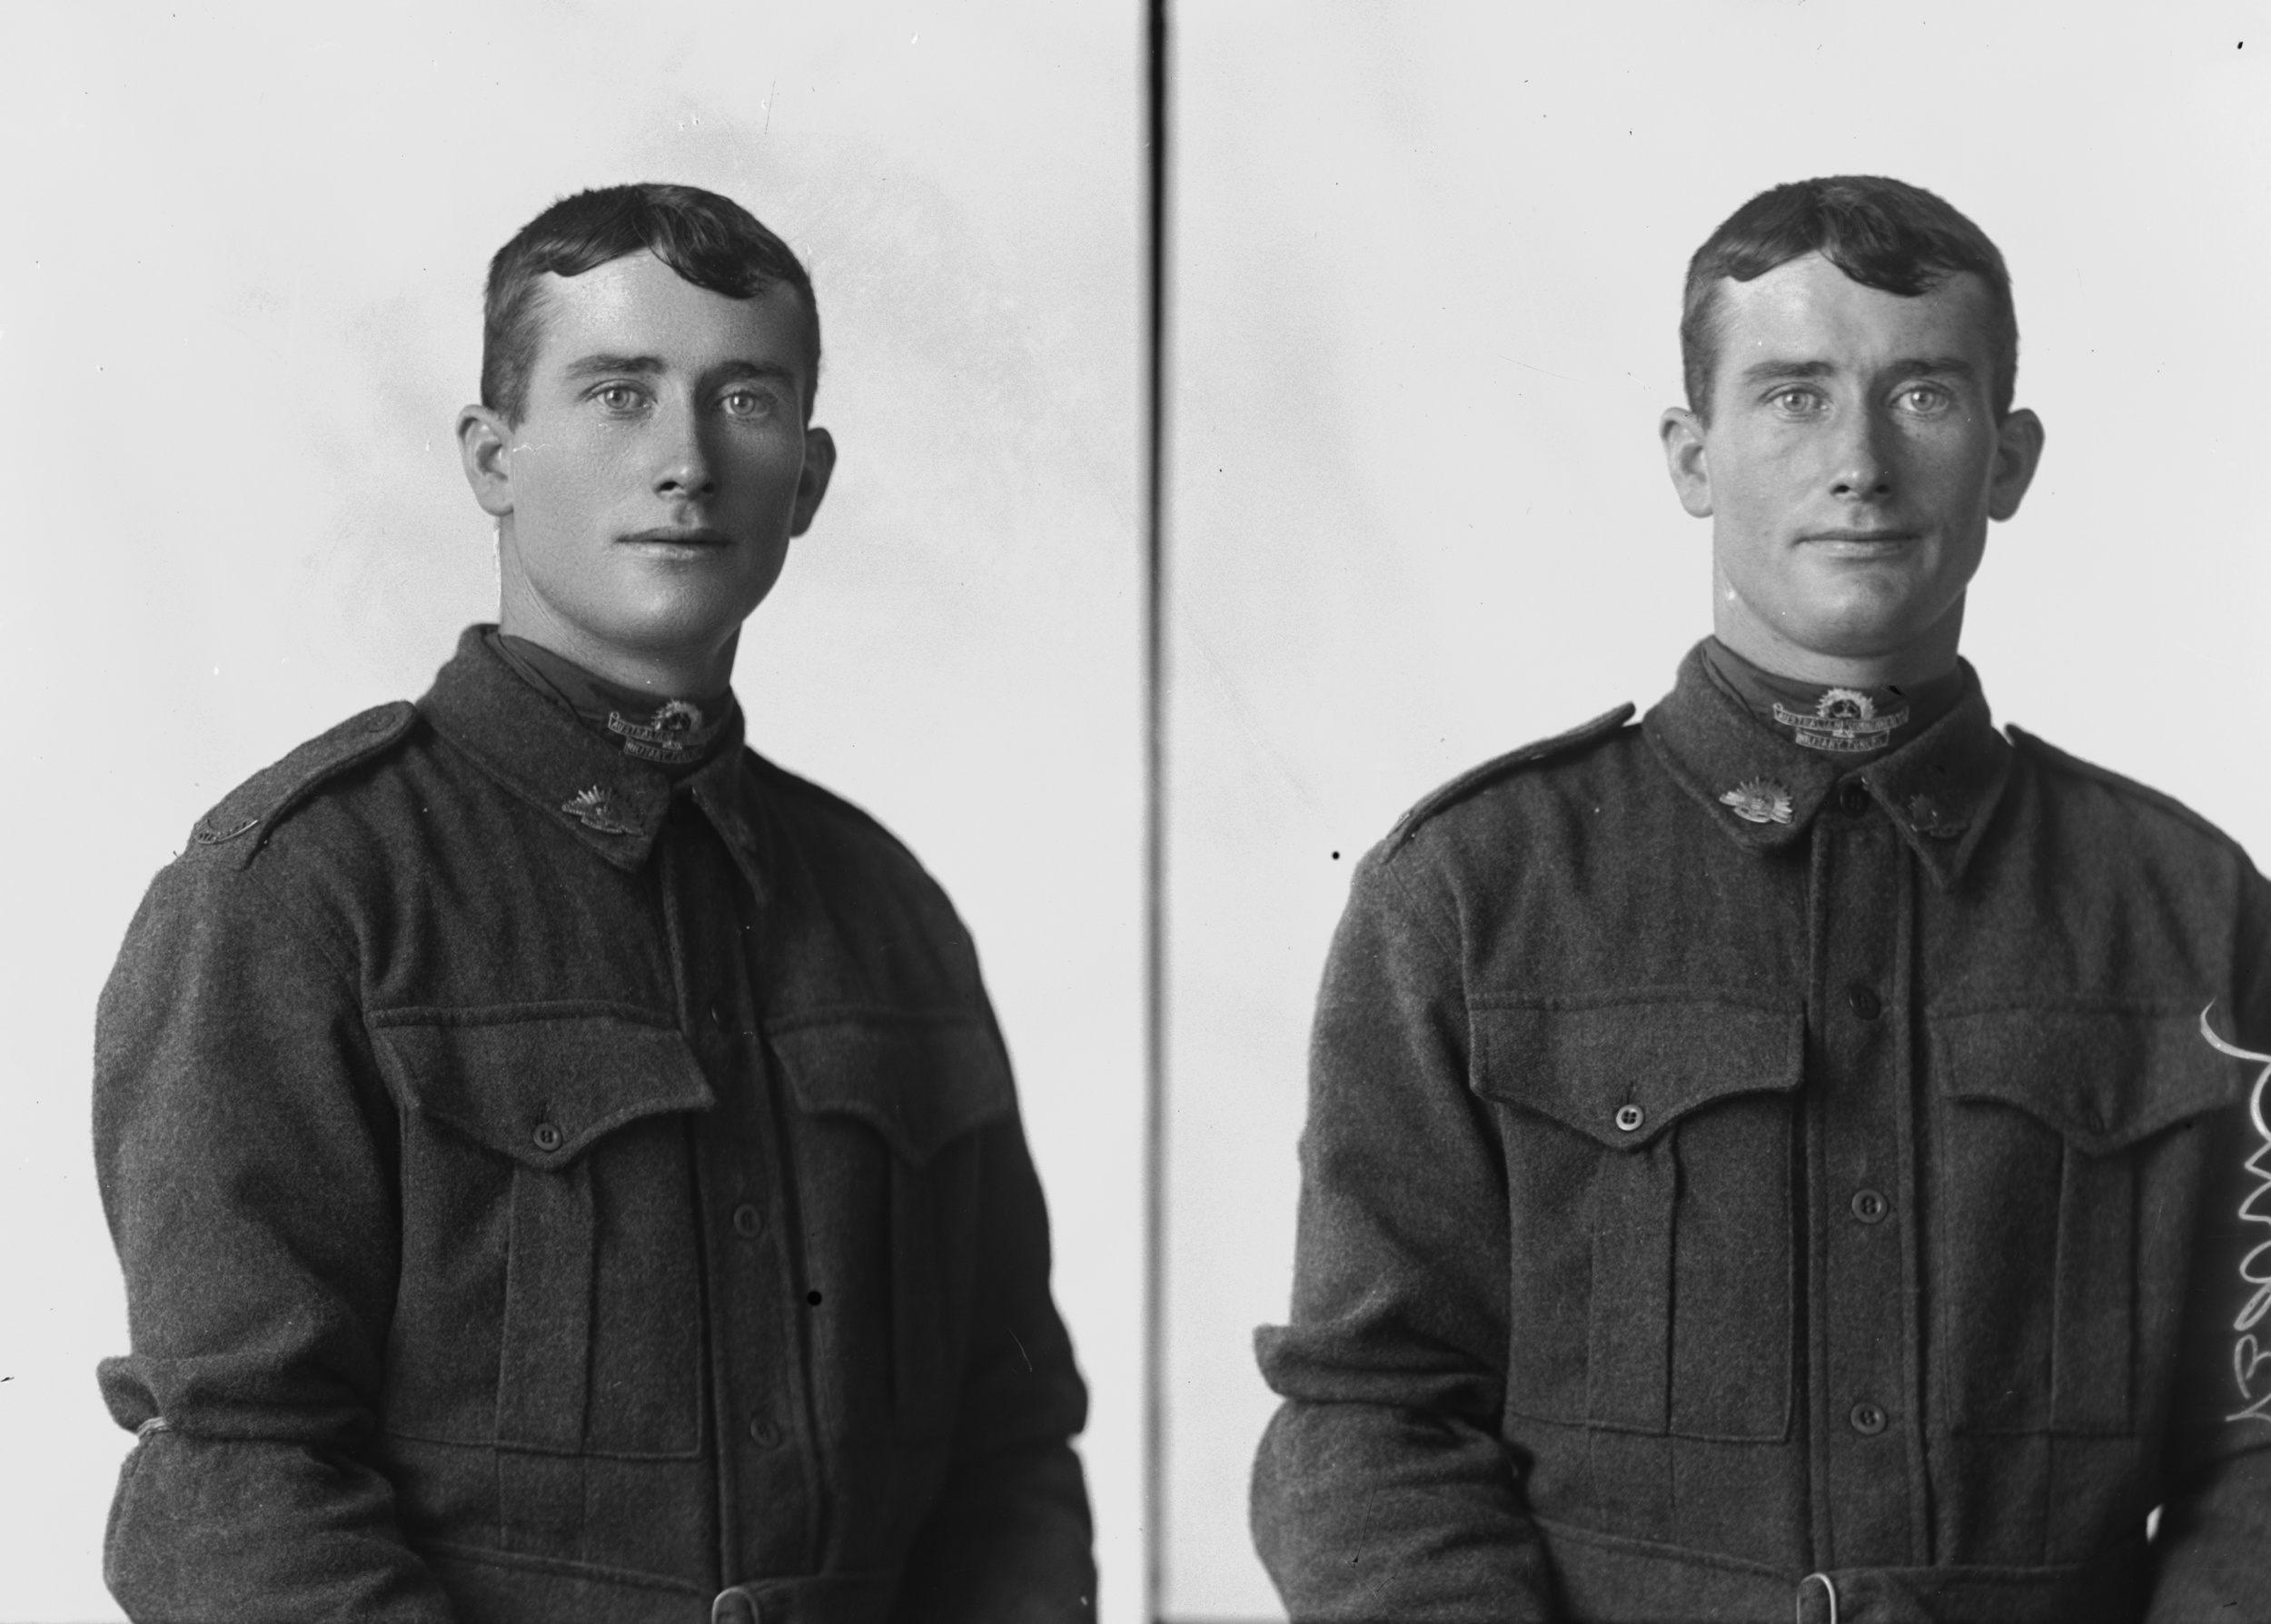 Photographed at the Dease Studio, 117 Barrack Street Perth WA Image courtesy of the State Library of Western Australia: 108634PD